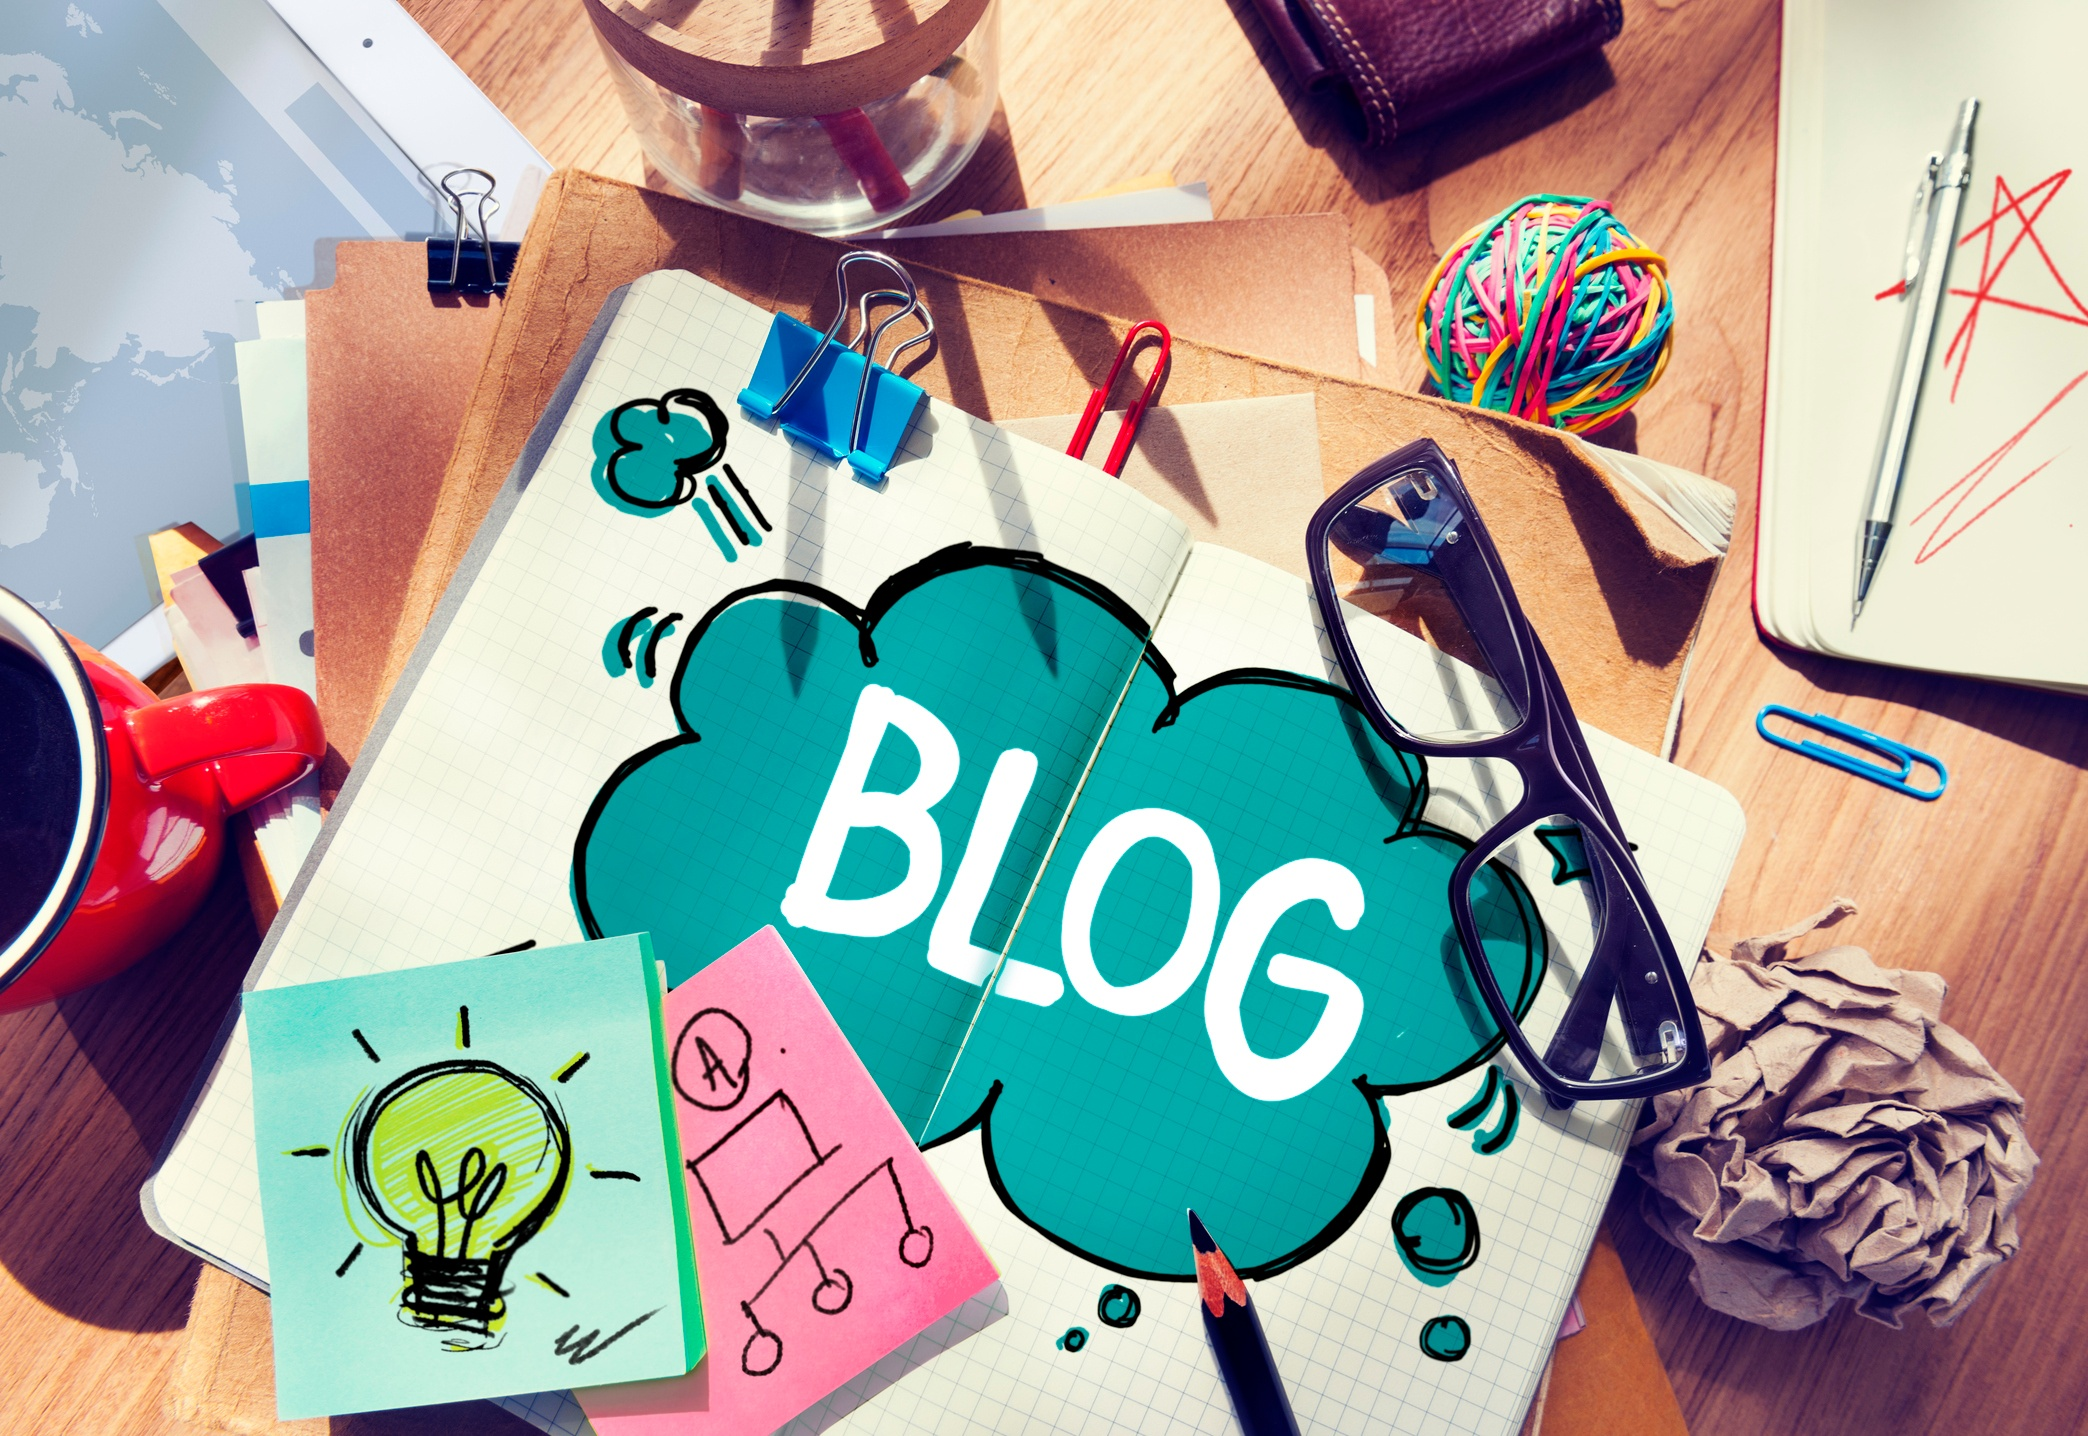 How Blogs Help Business, Even If No One's Reading Yours